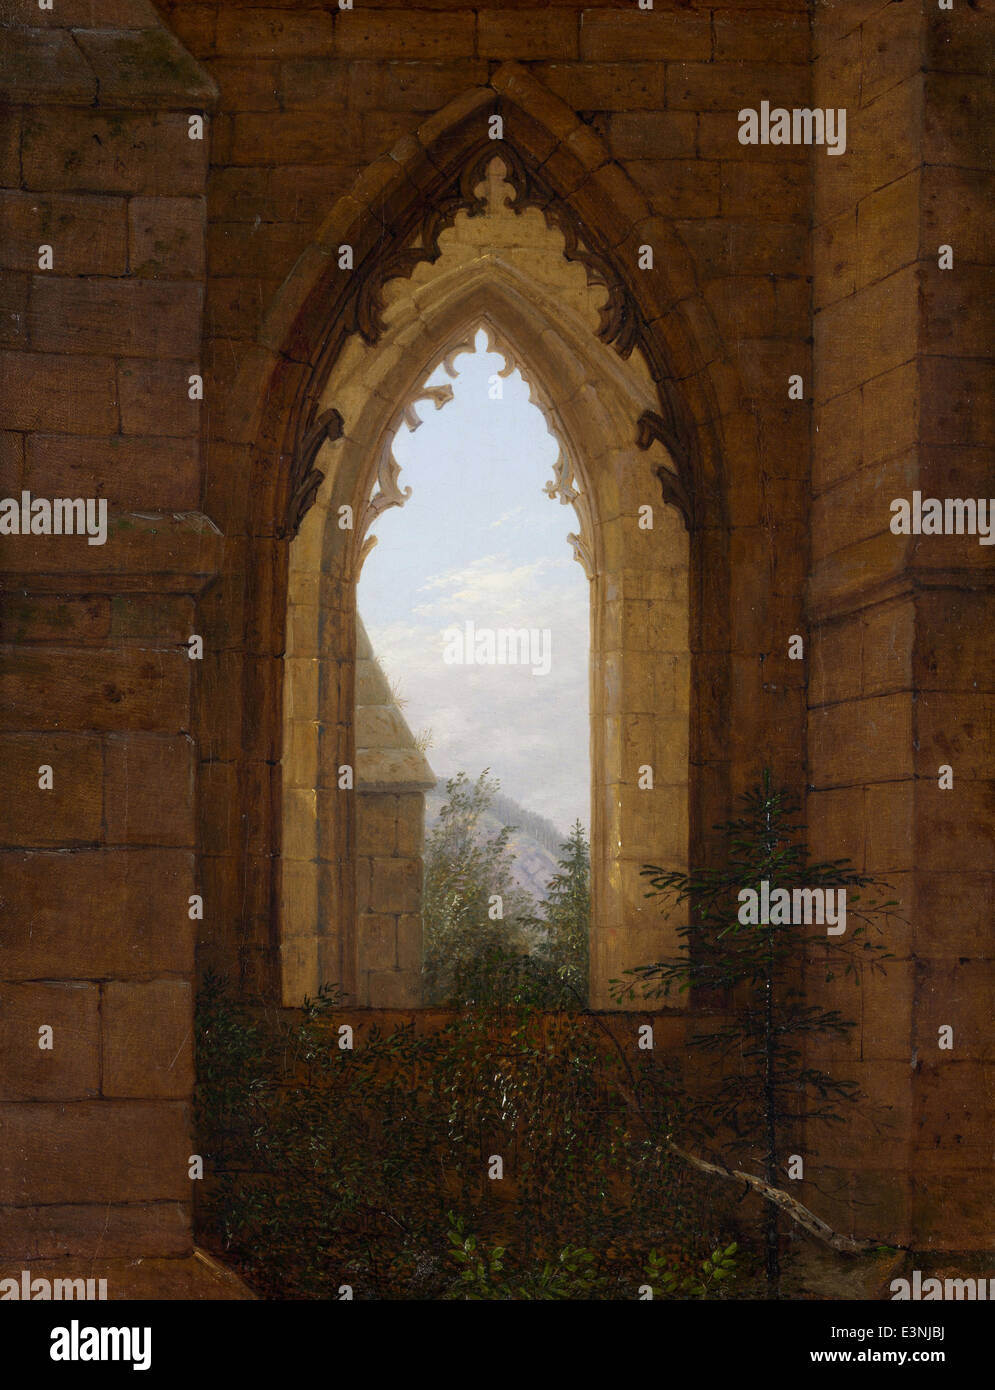 Carl Gustav Carus - Gothic Windows in the Ruins of the Monastery at Oybin - 1828 - Stock Image